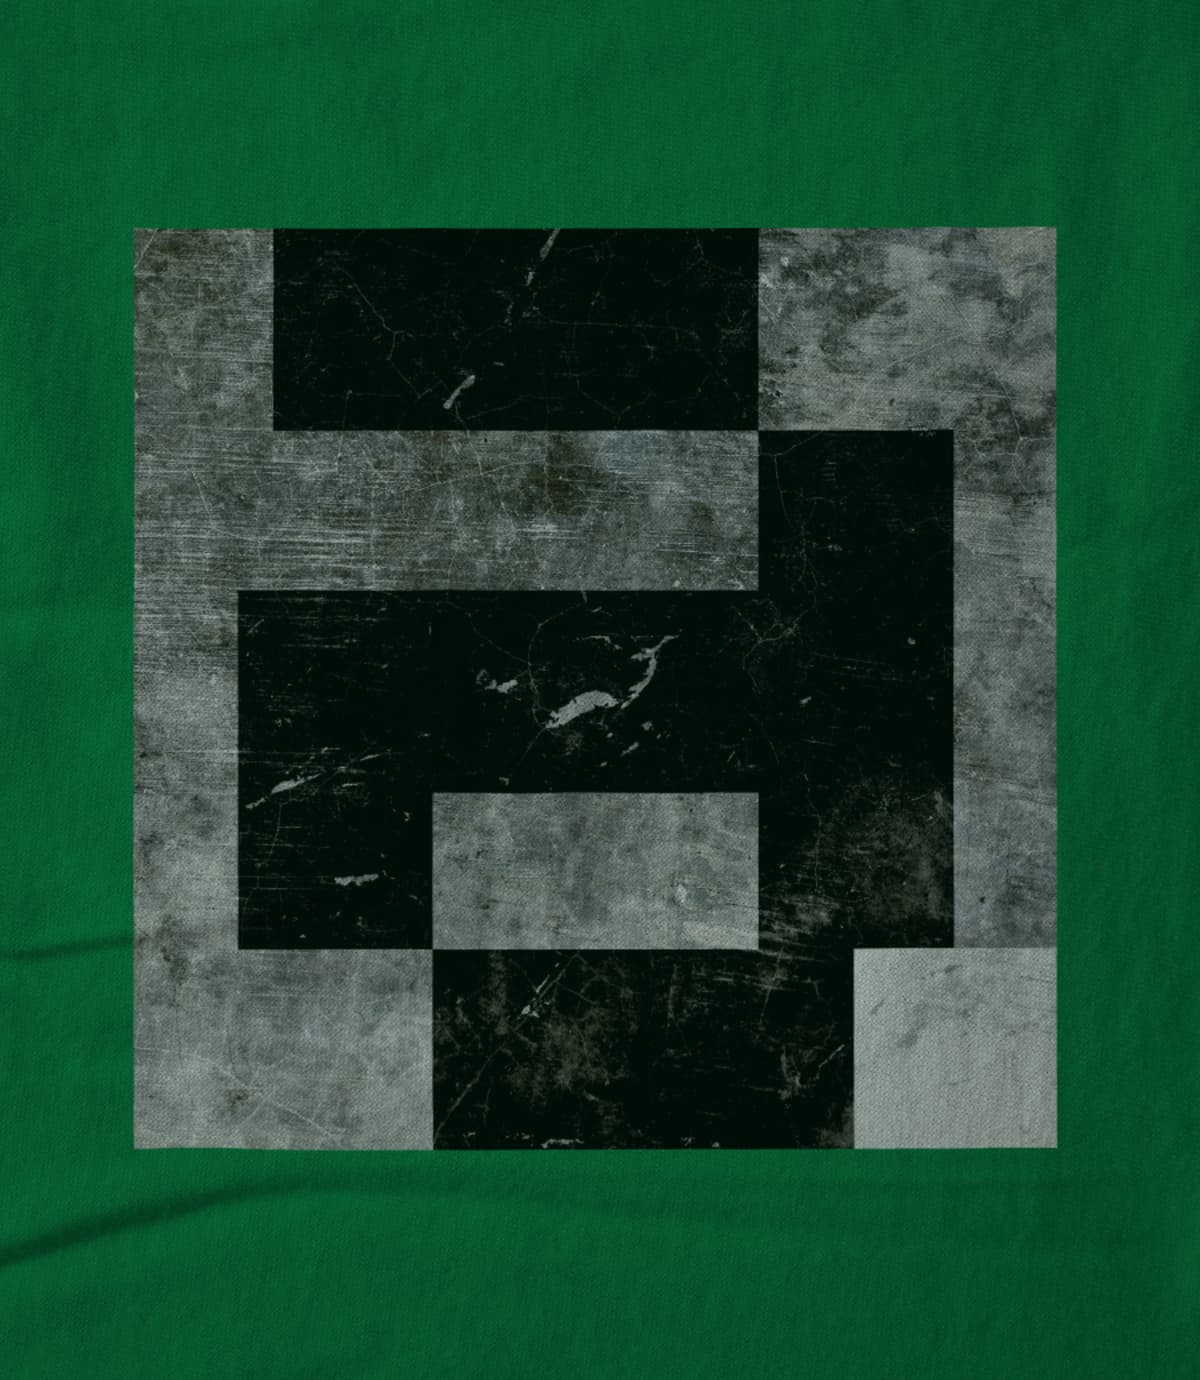 Architecture recordings arx concrete   green tee 1596462893